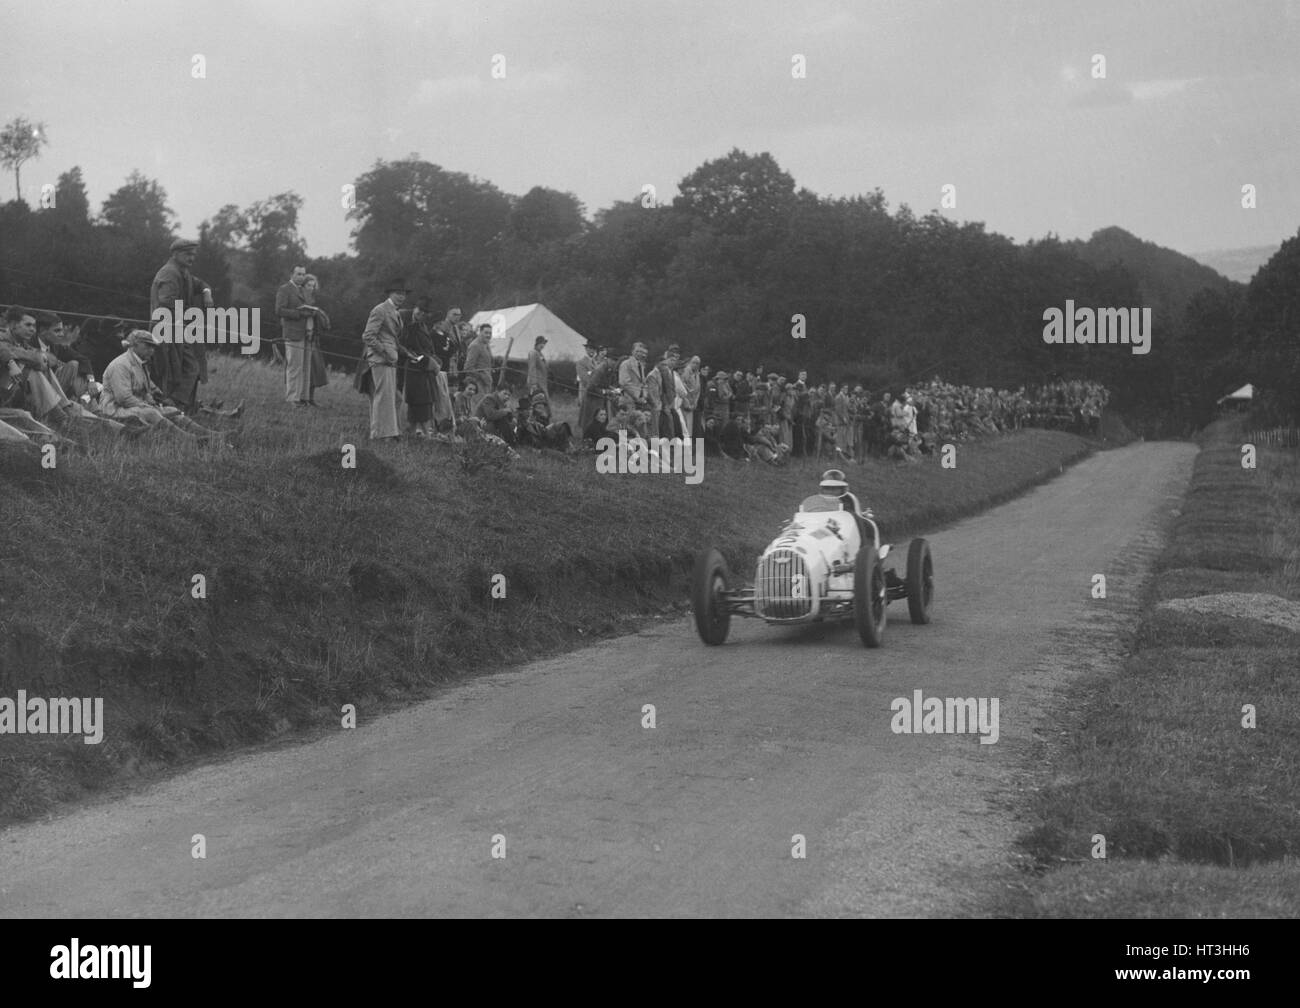 Austin 7 Of LP Driscoll Competing In The MAC Shelsley Walsh Speed